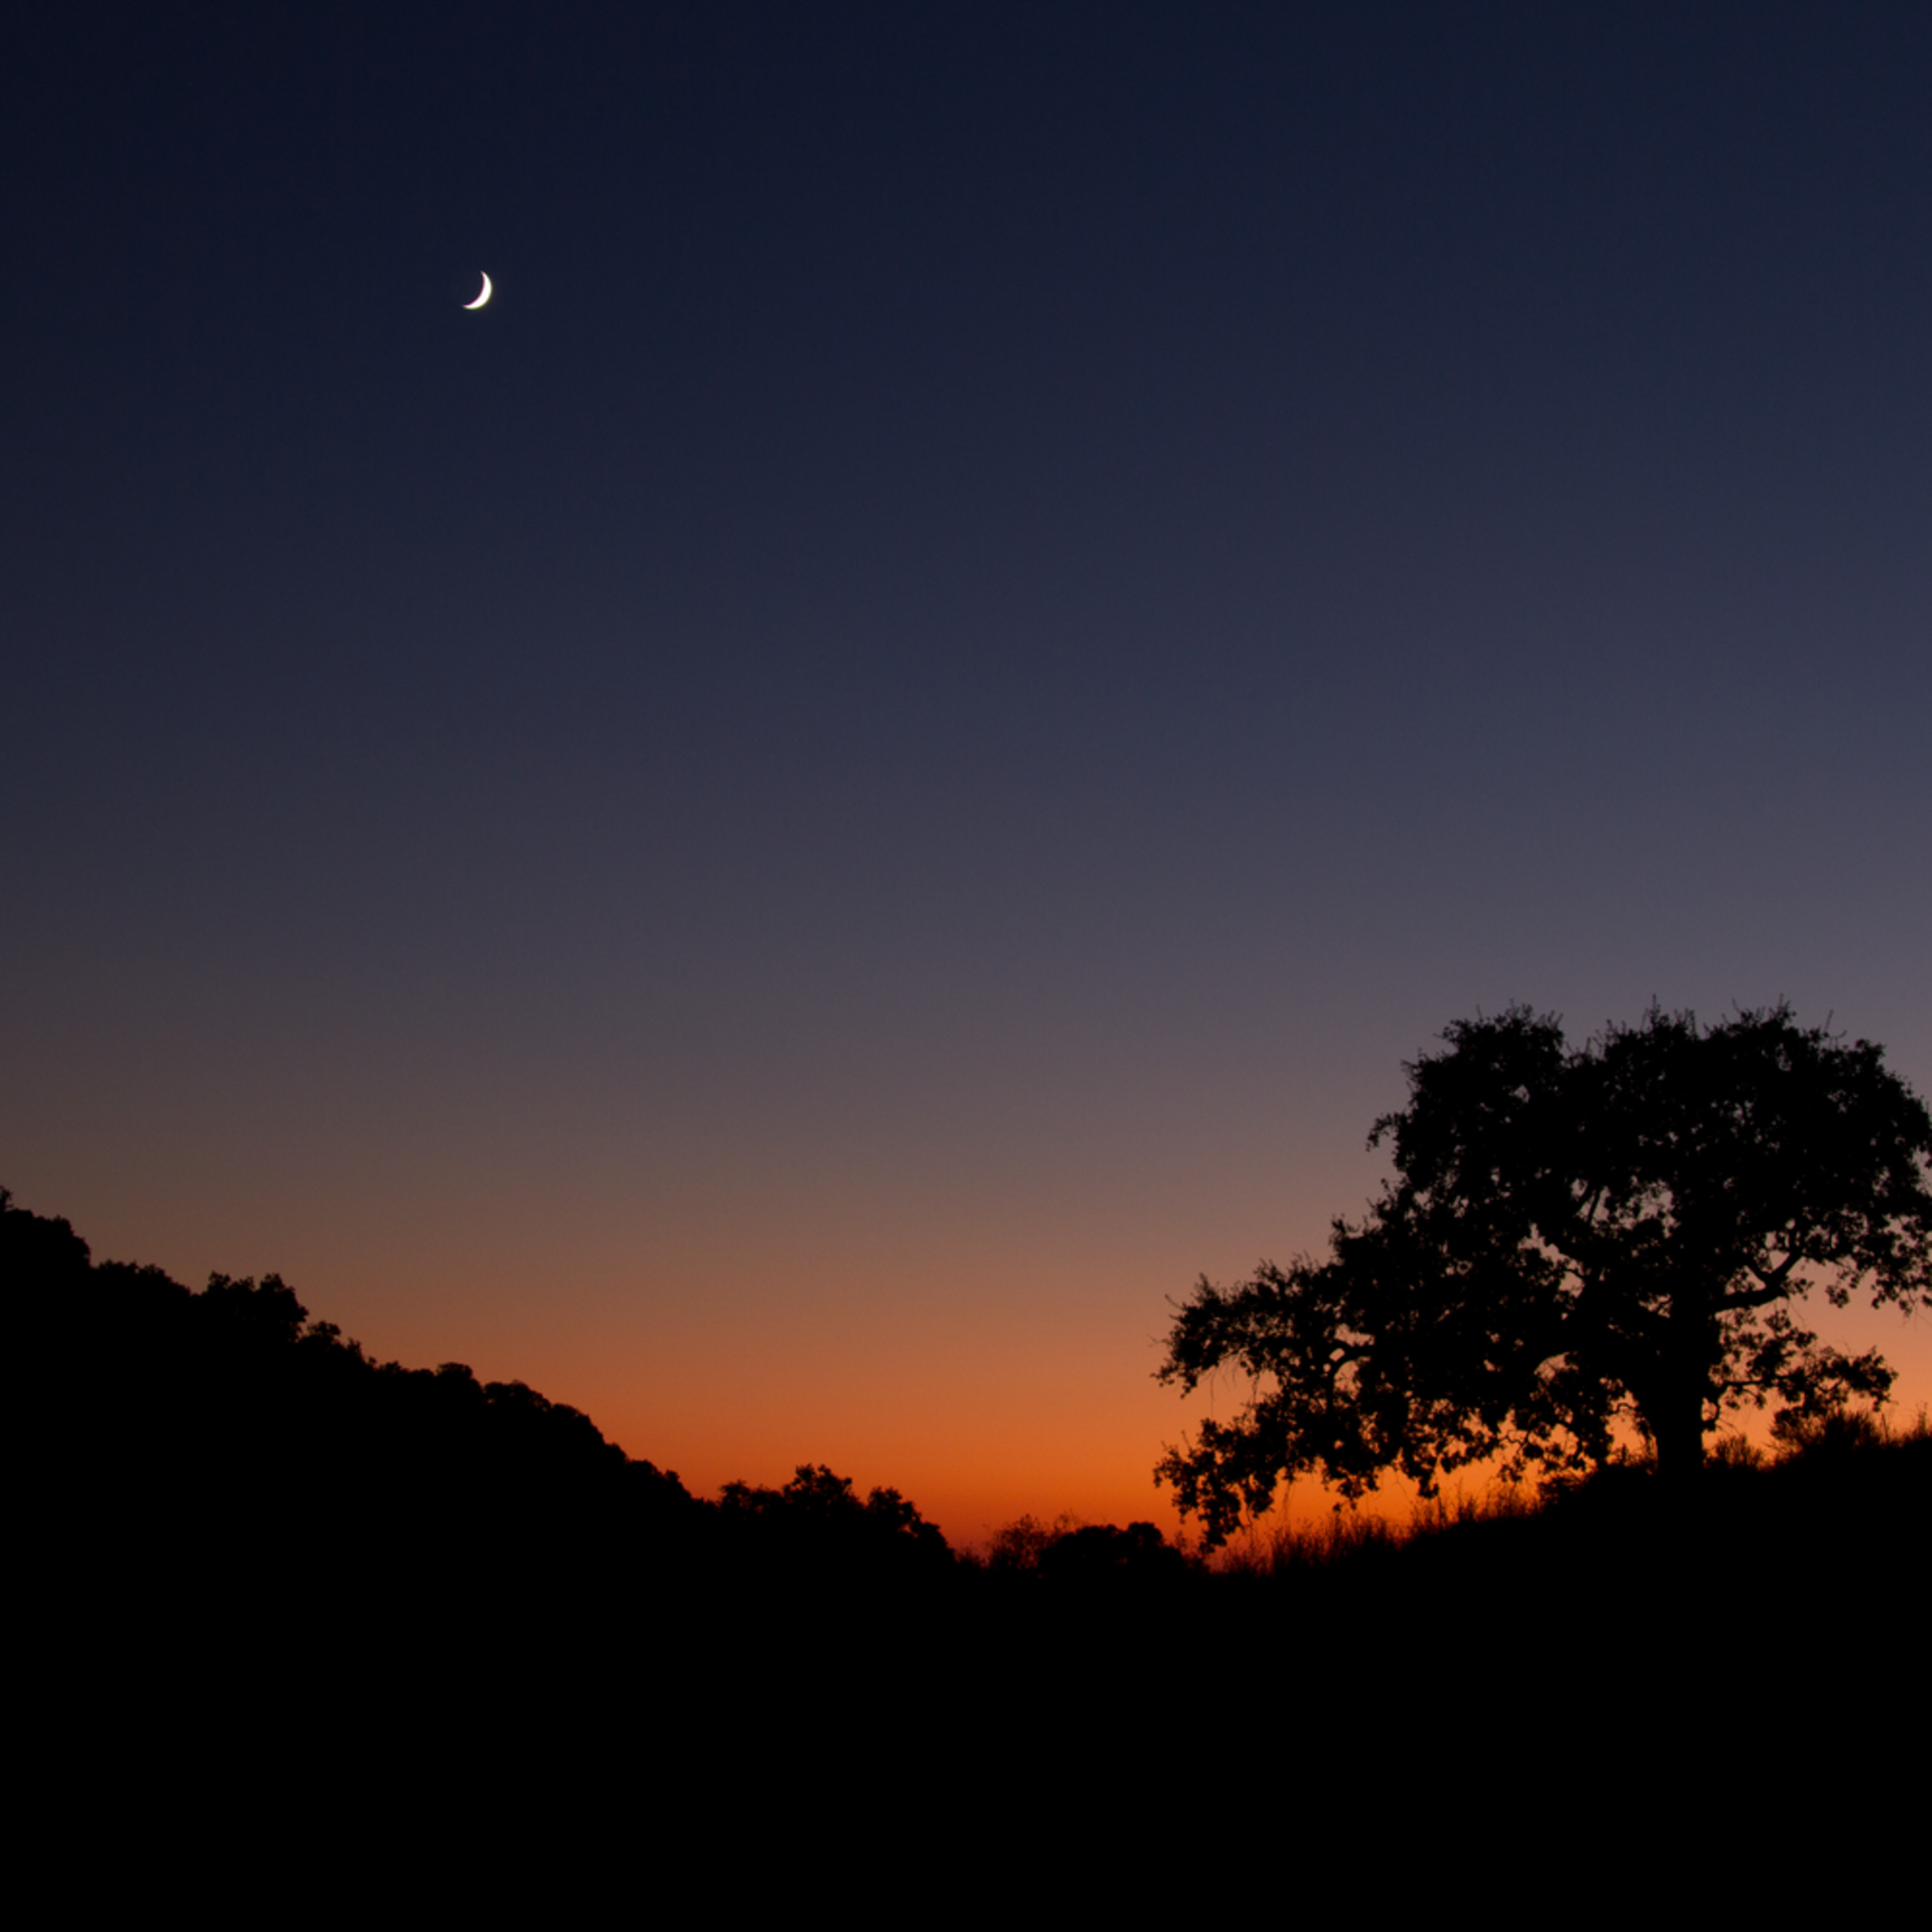 Sunset tree and moon l47hzq